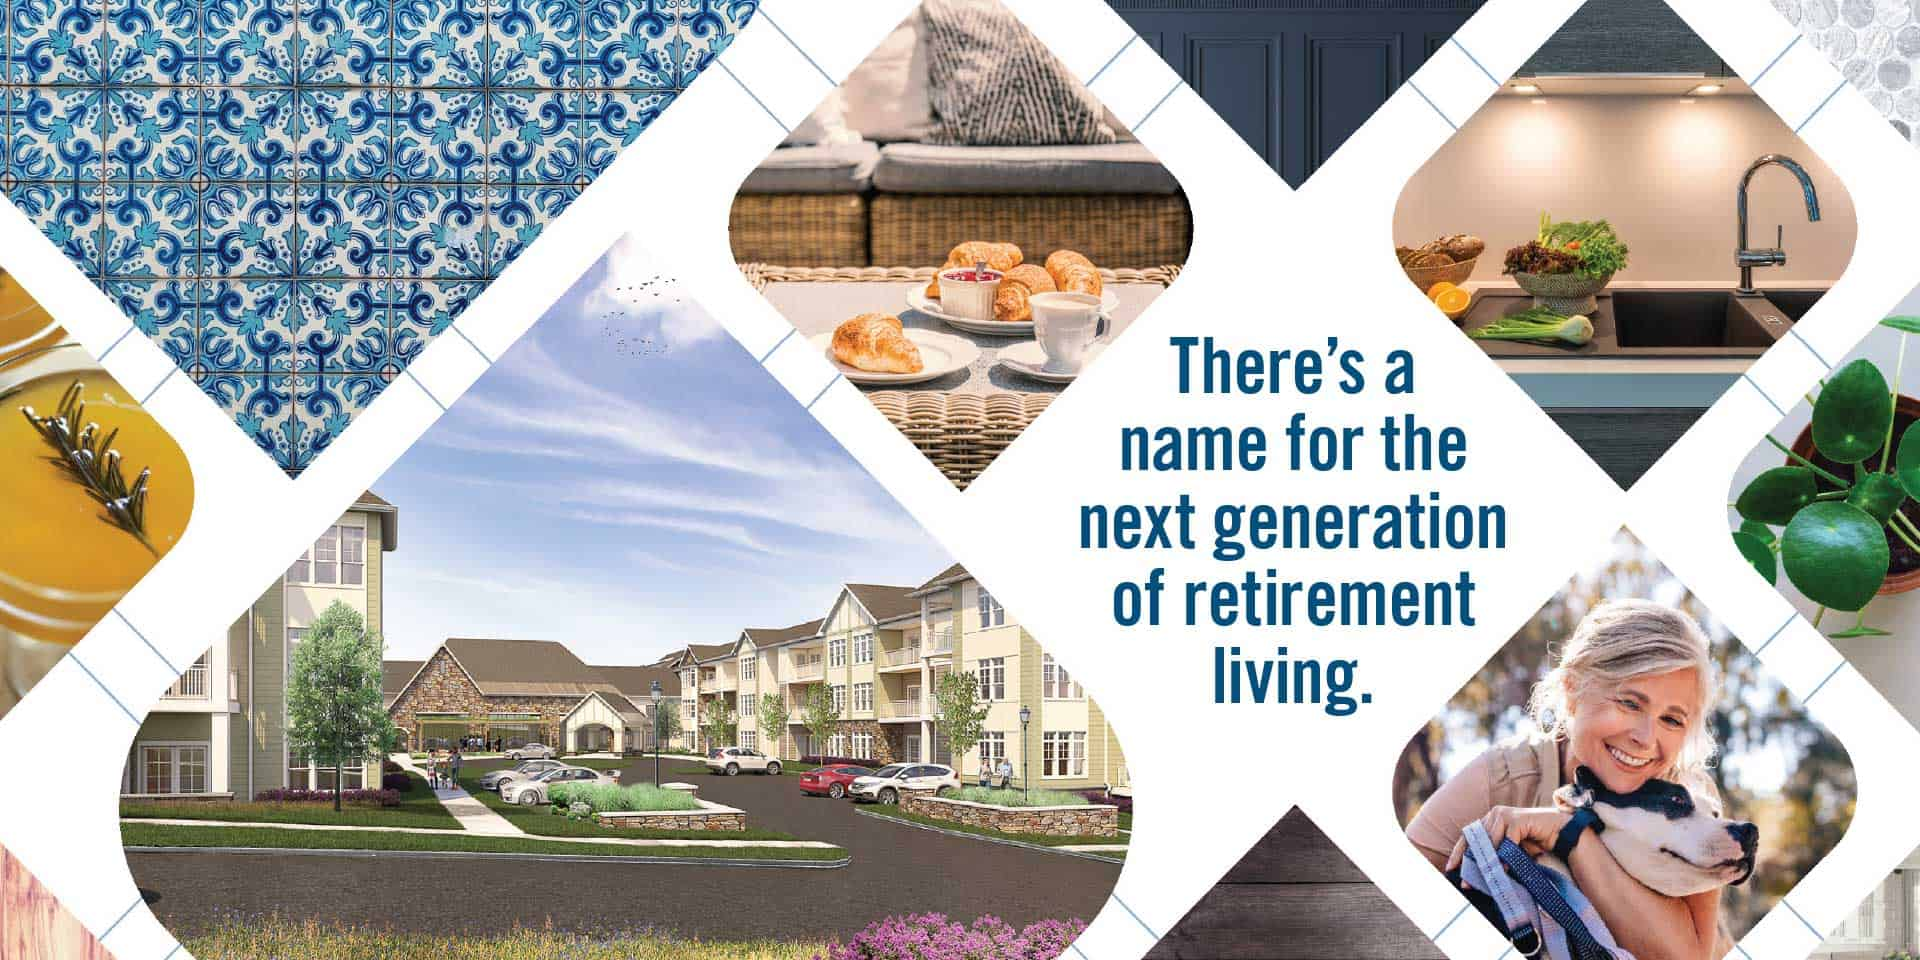 There's a name for the next generation of retirement living.